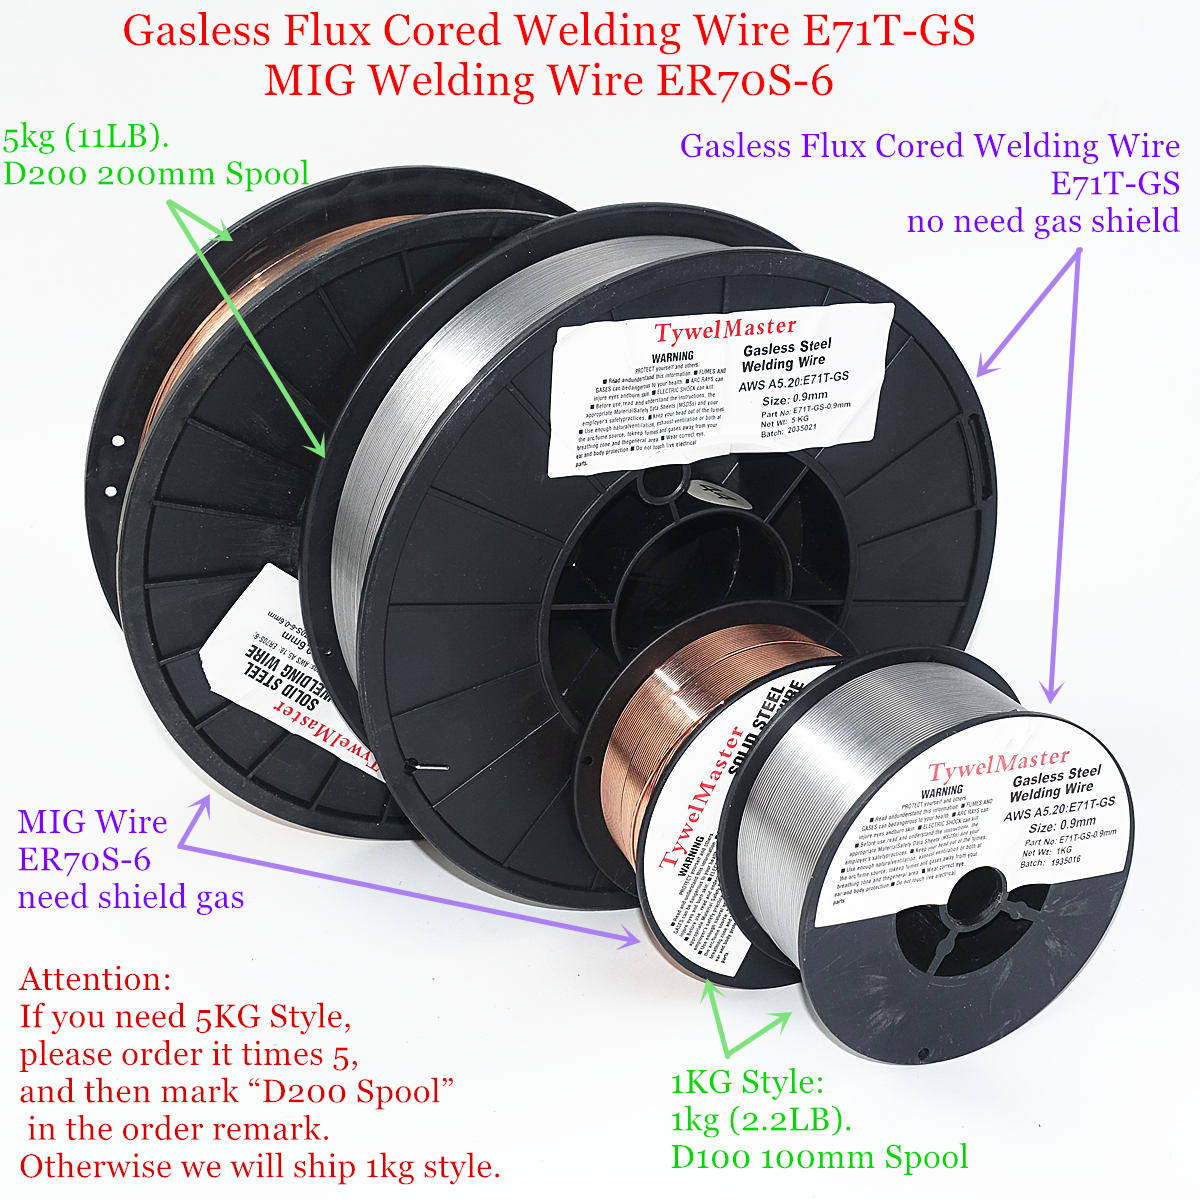 Flux Cored Gasless Welding Wire E71T-GS No Gas or MIG Welding Wire ER70S-6 0.6/0.8/0.9mm 1kg Steel Welding Material(China)